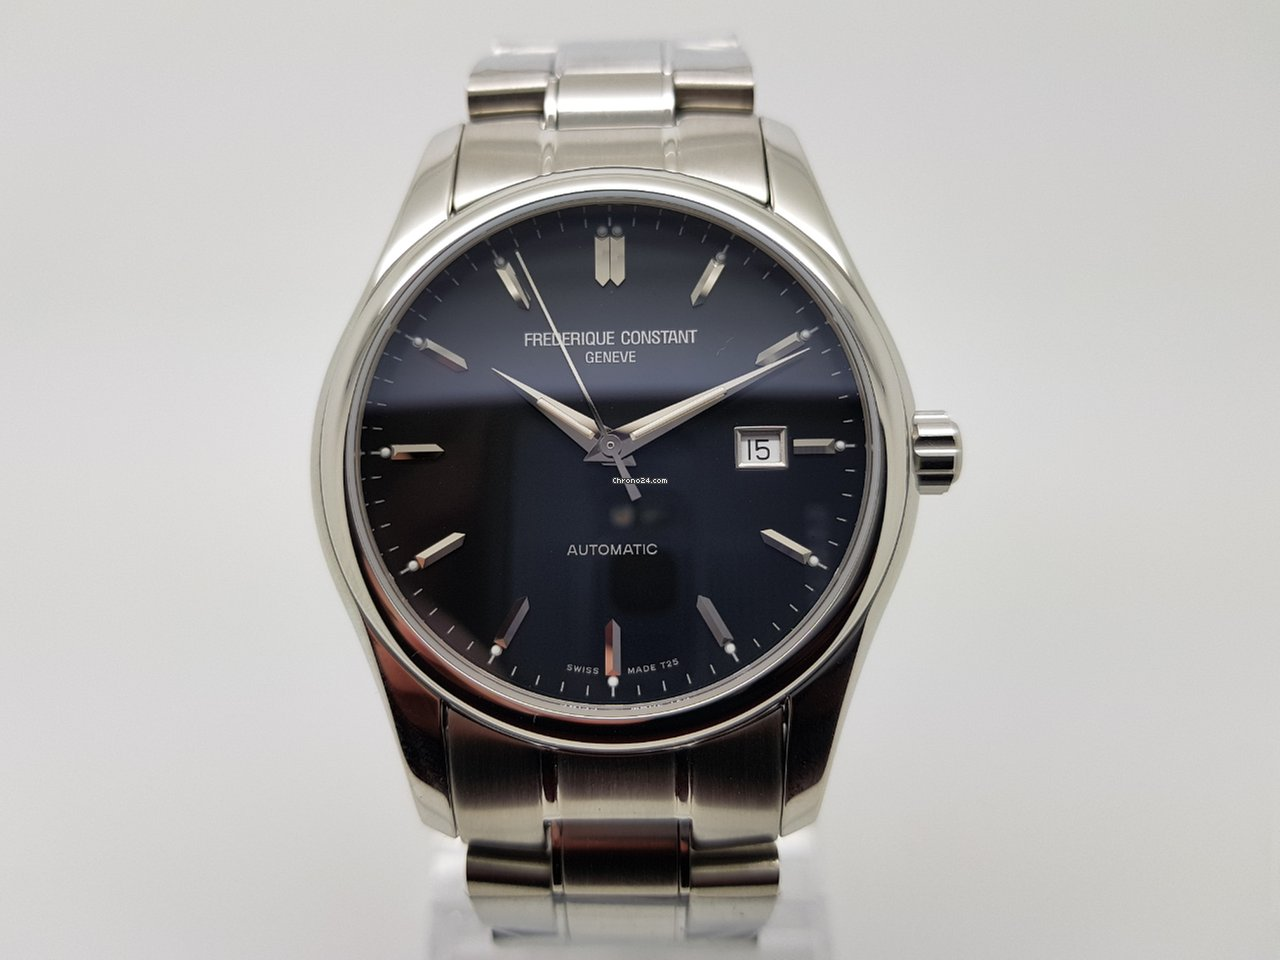 Frederique Constant Clear Vision Automatic Watch Black Dial Stainless Steel